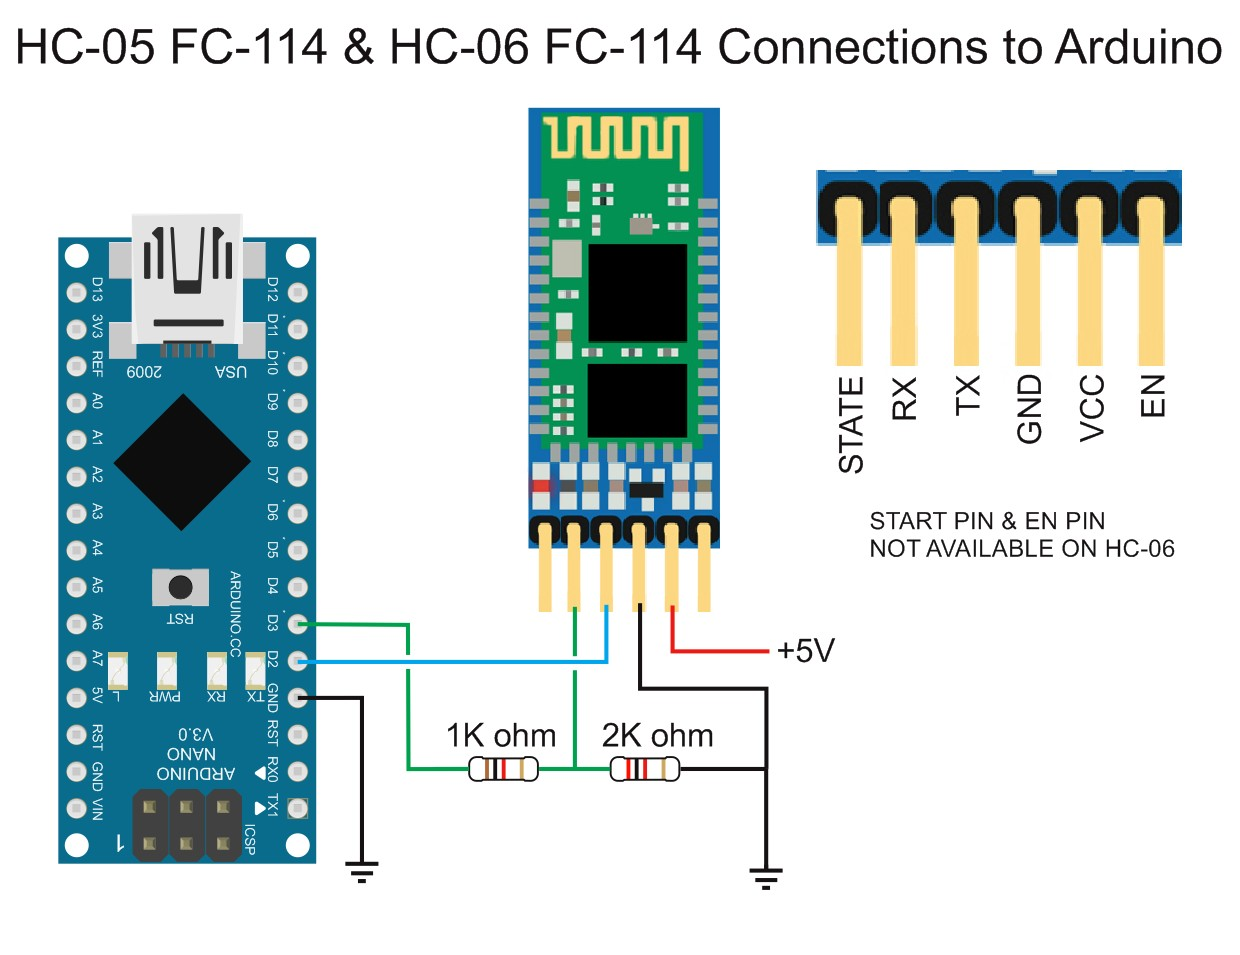 What can be done with the help of arduino